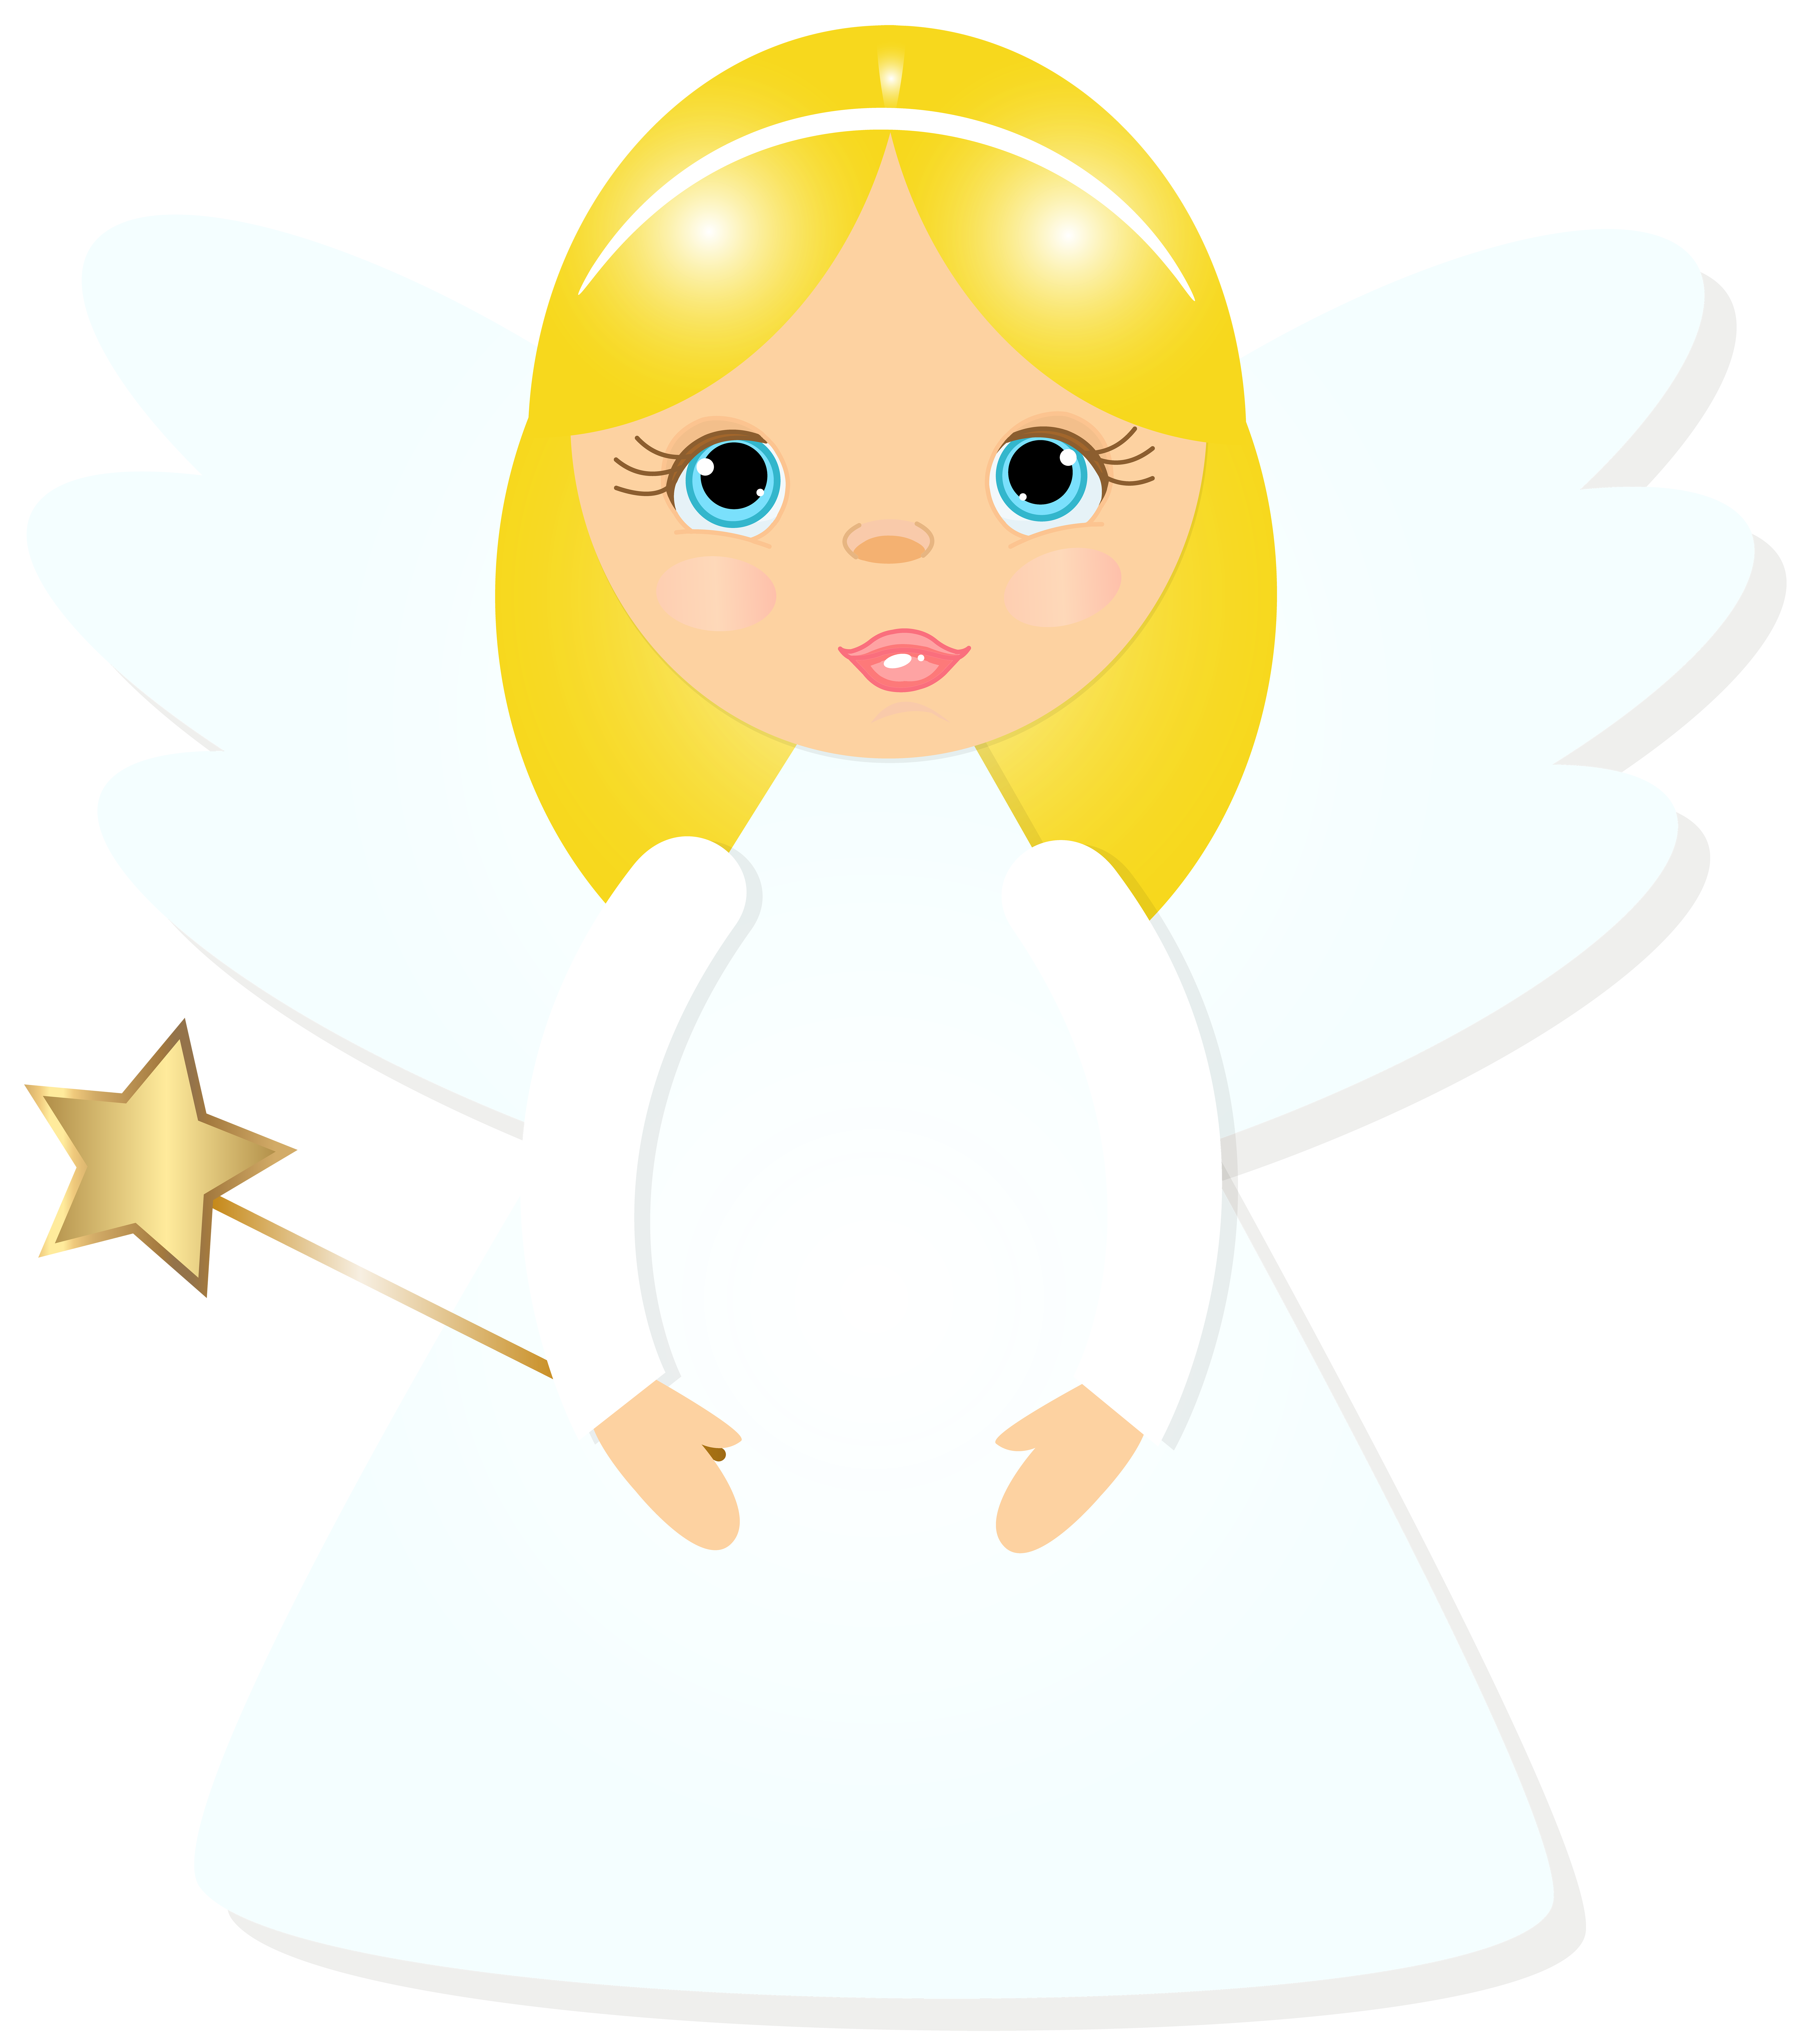 Christmas angel clipart images picture transparent stock Christmas Angel Transparent PNG Clip Art Image | Gallery ... picture transparent stock